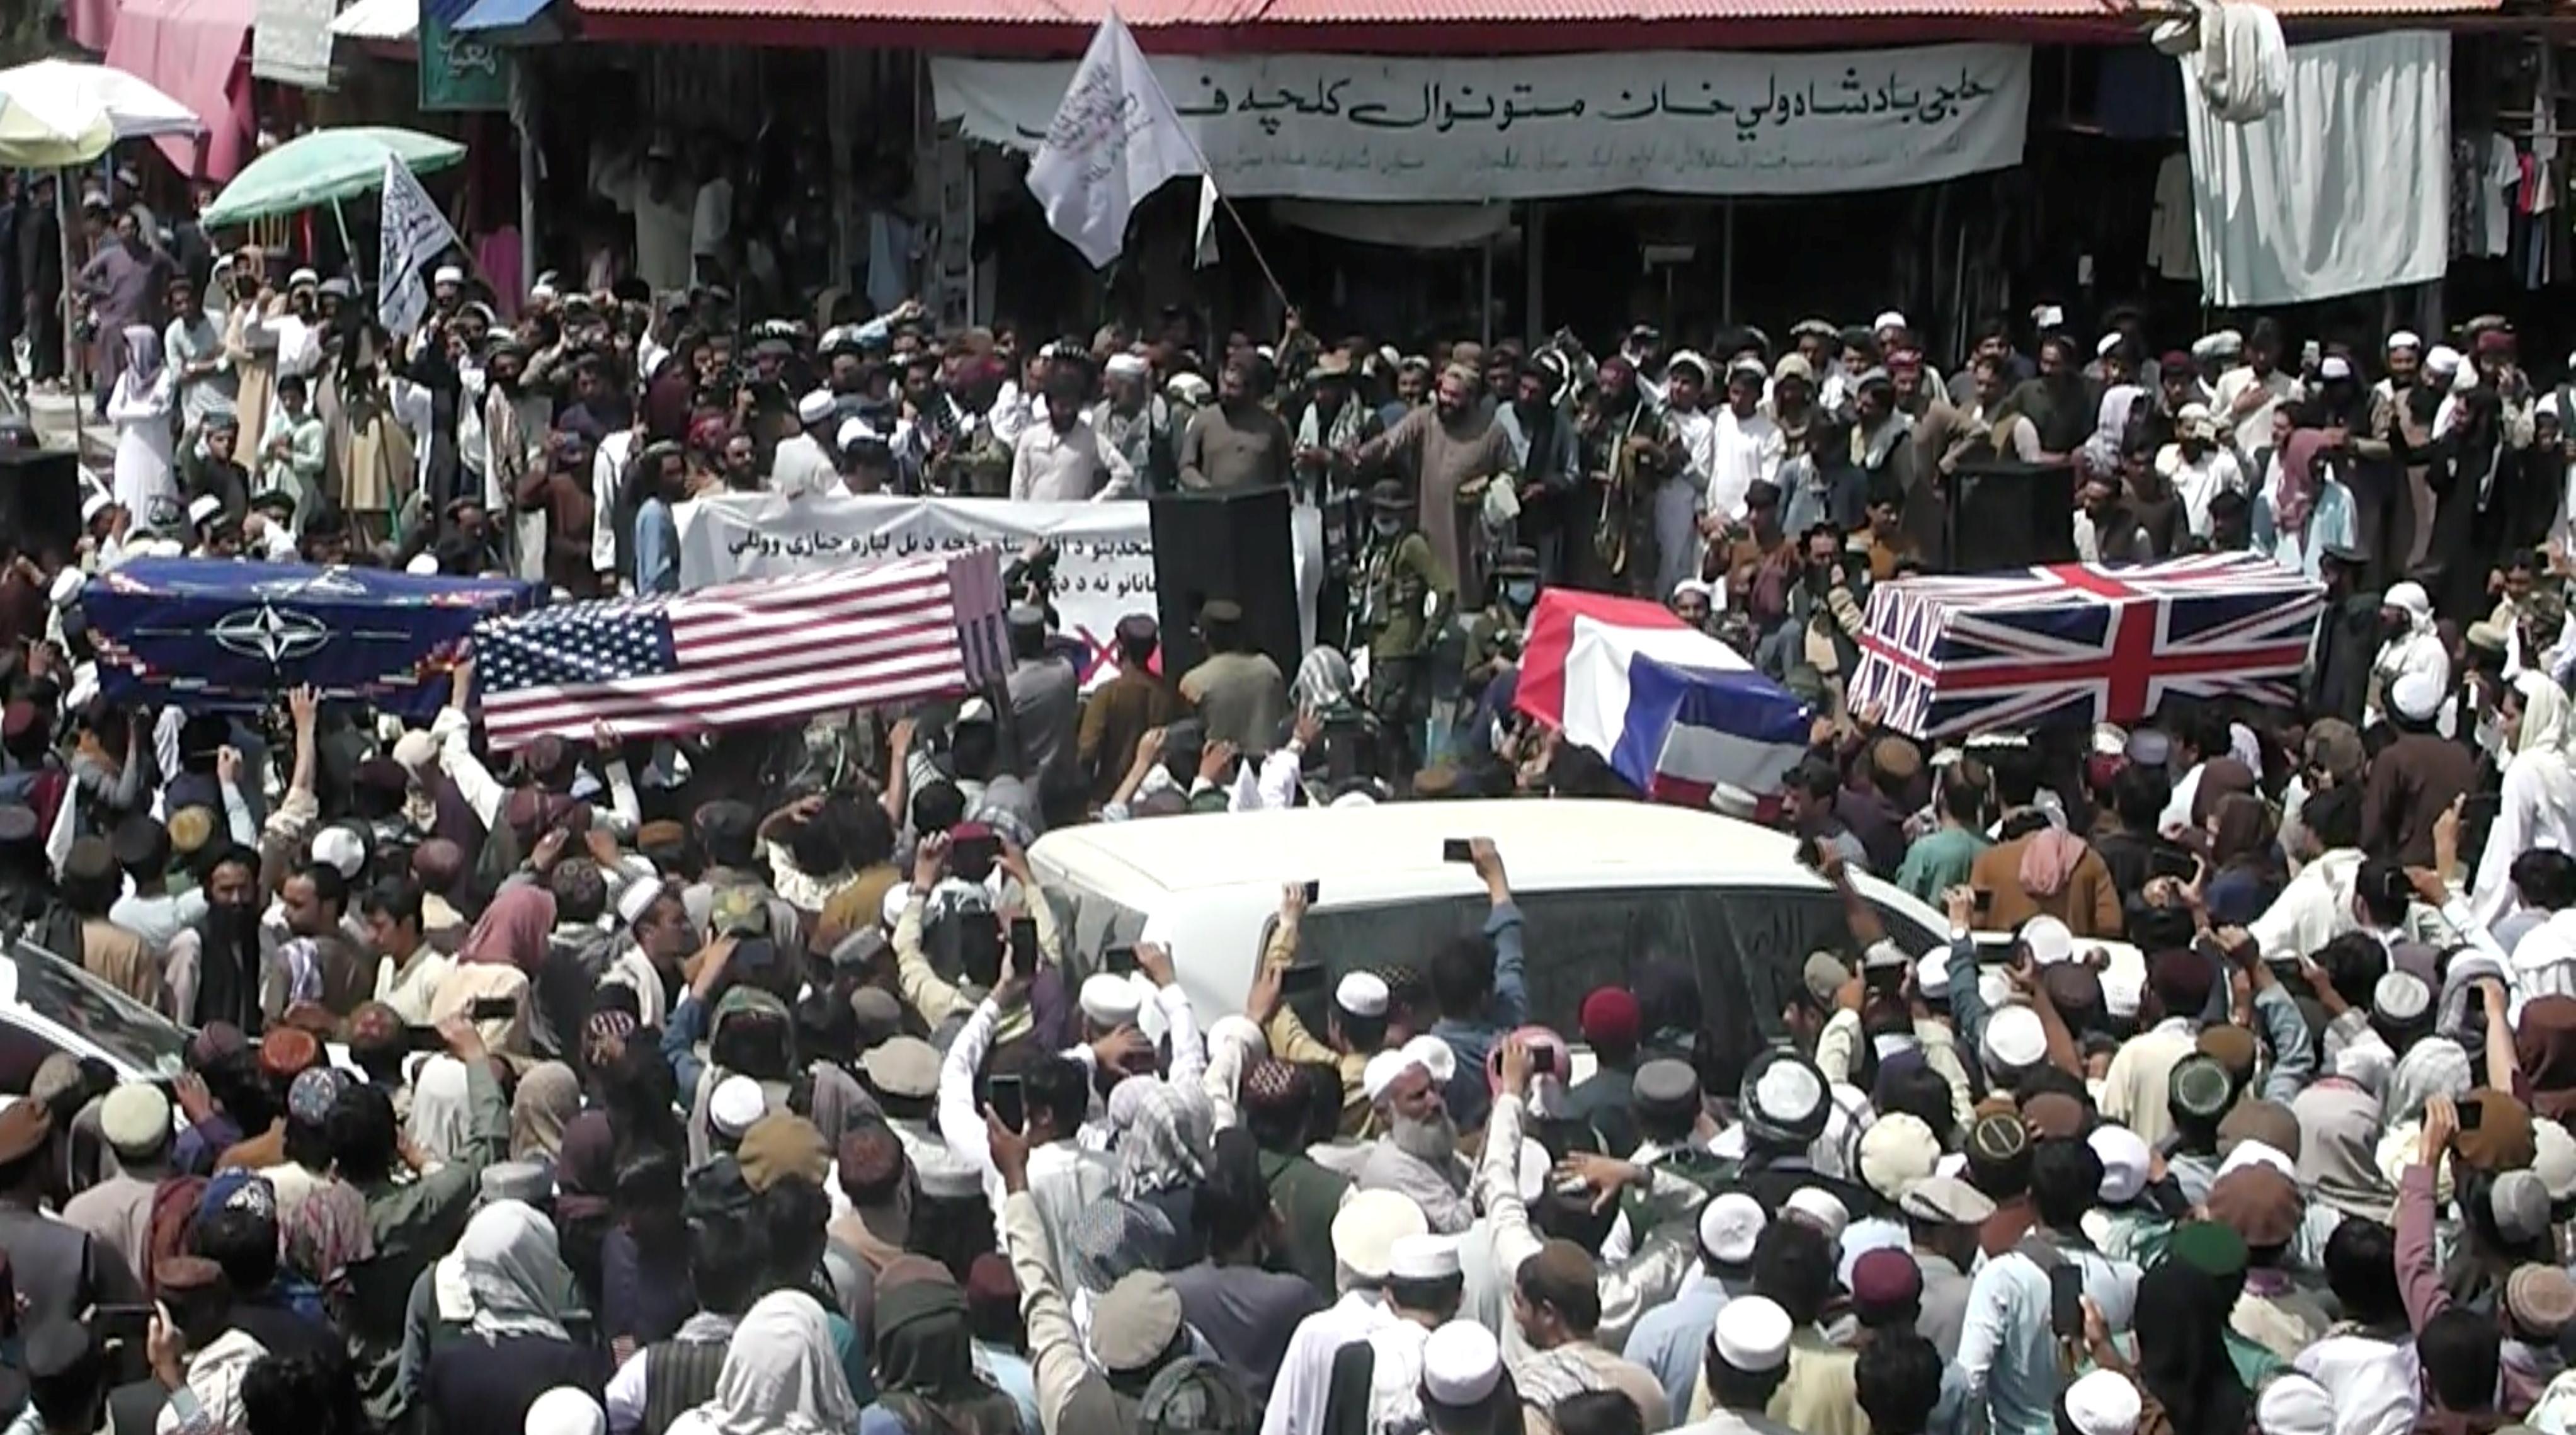 Crowd carries makeshift coffins draped in NATO's, U.S. and a Union Jack flags during a pretend funeral  on a street in Khost, Afghanistan August 31, 2021, in this screen grab obtained from a social media video. ZHMAN TV/via REUTERS